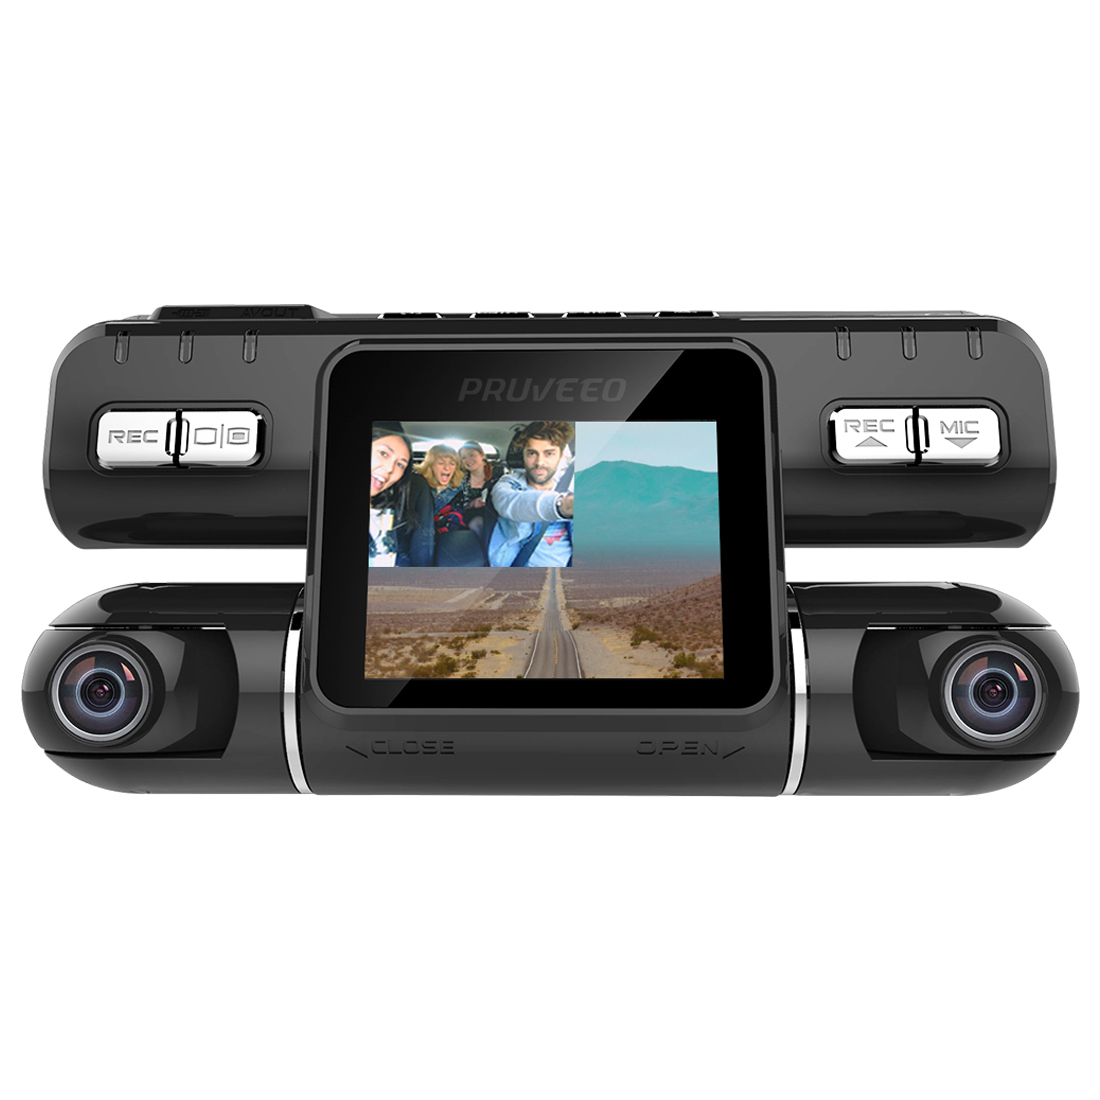 pruveeo mx2 dash cam front and rear dual camera for cars. Black Bedroom Furniture Sets. Home Design Ideas